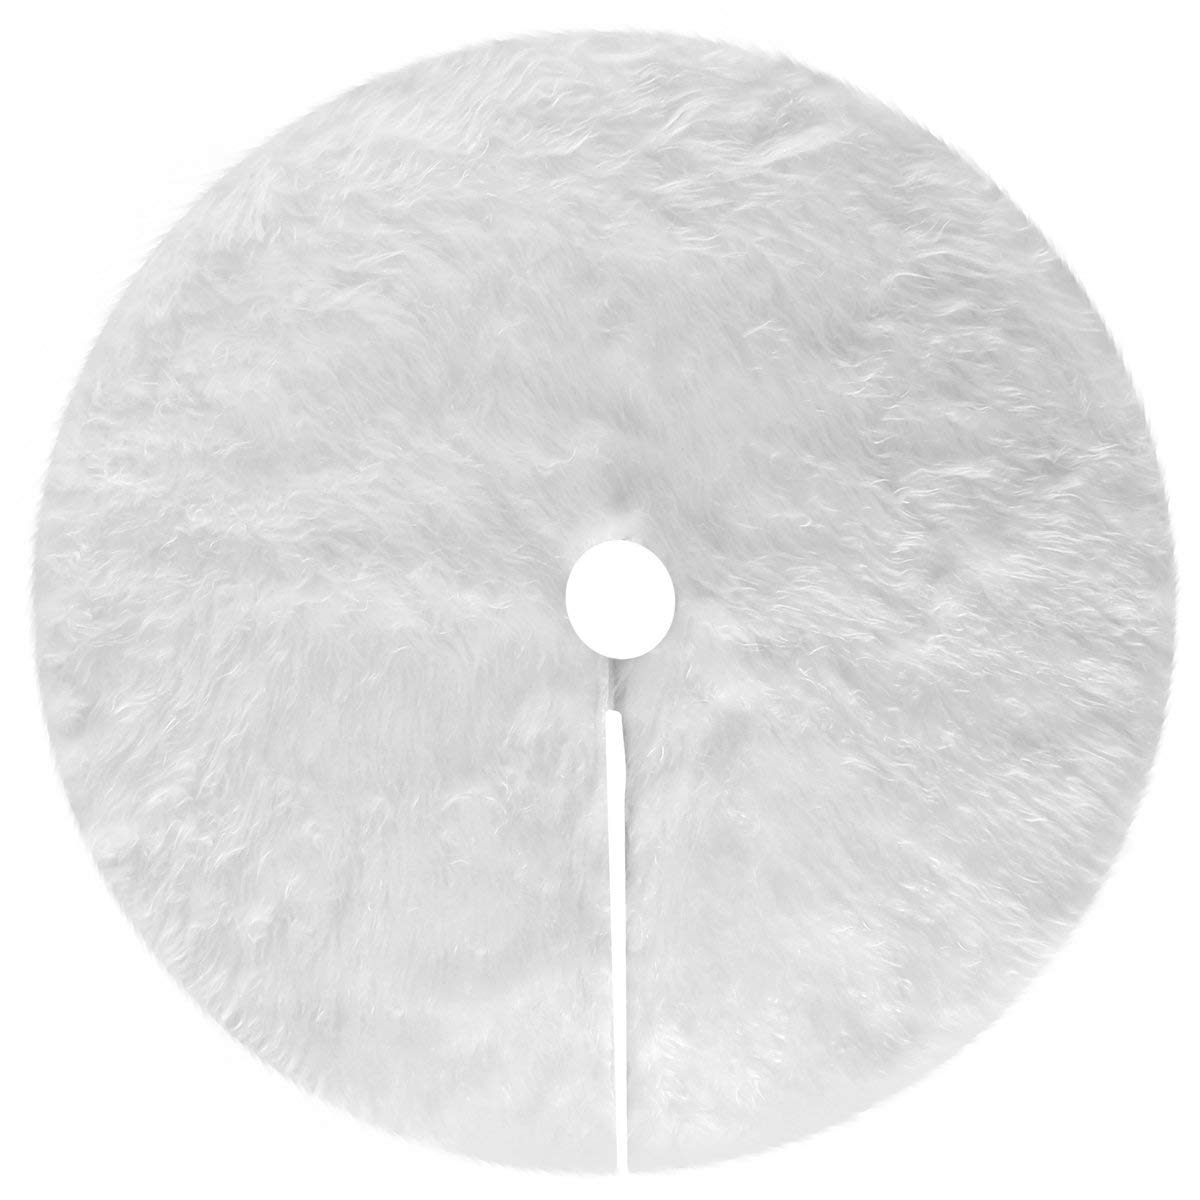 Zehhe 31 inches Snowy White Faux Fur Christmas Tree Skirt Xmas Holiday Tree Ornaments Decoration Merry Christmas Party Decoration